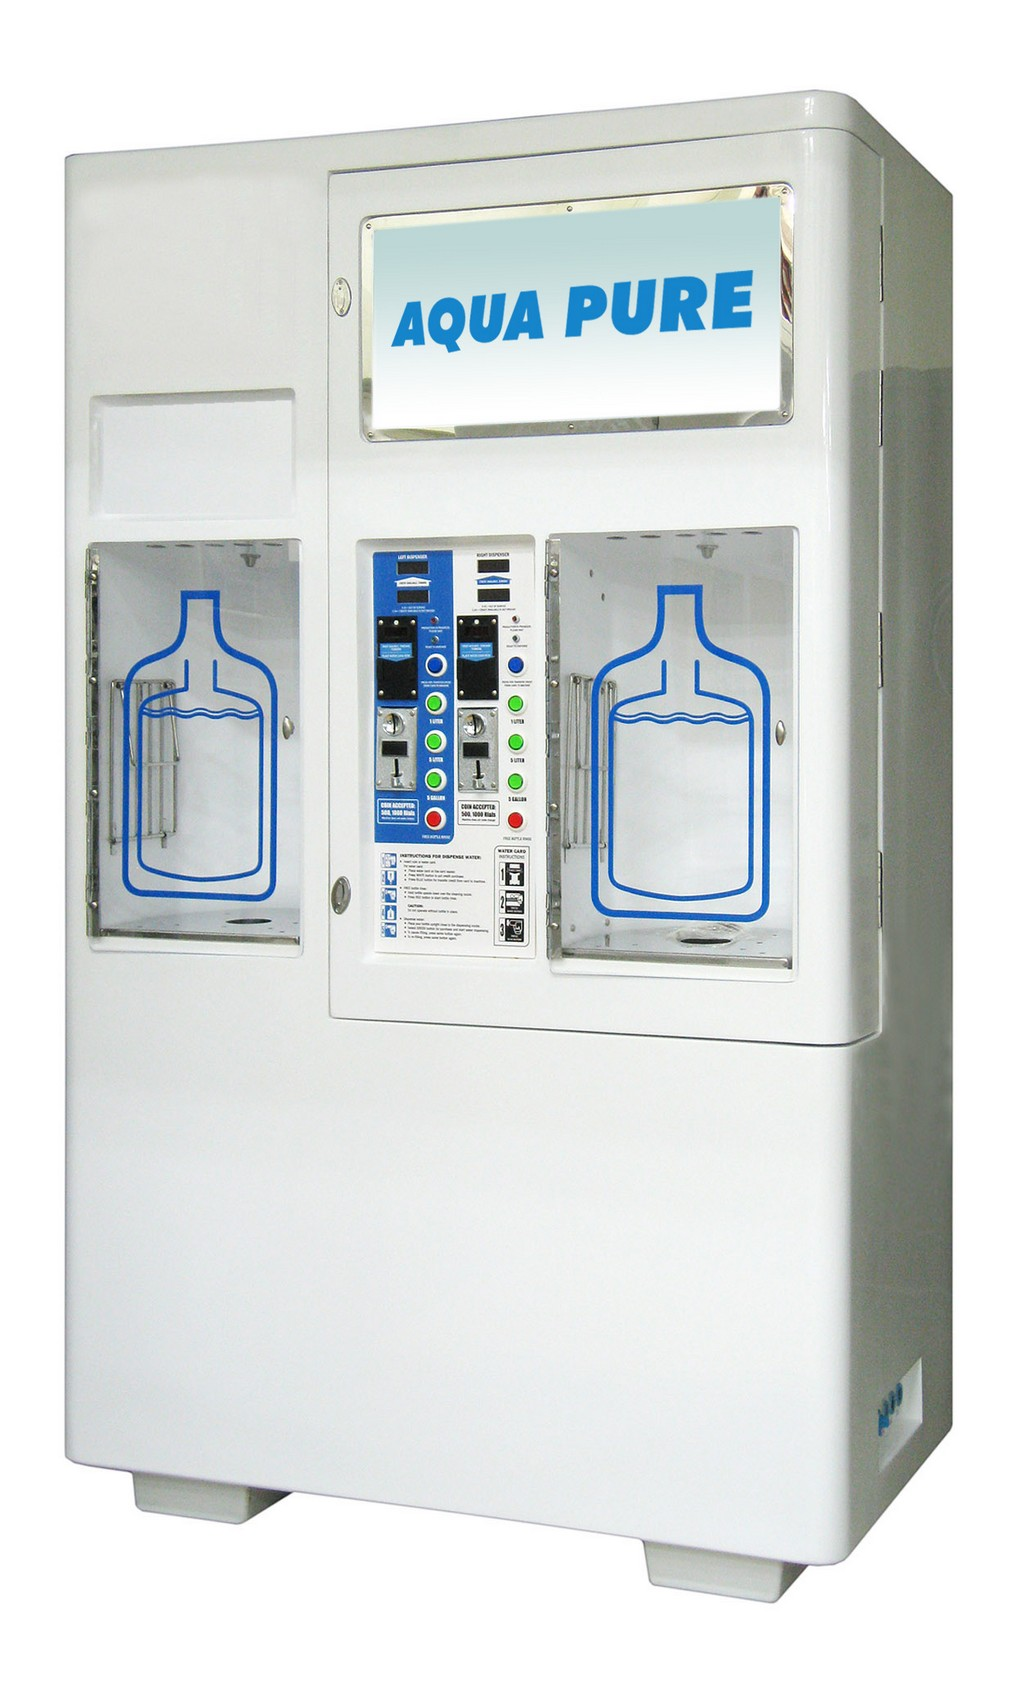 vending machine cost, vending machine singapore, used vending machine